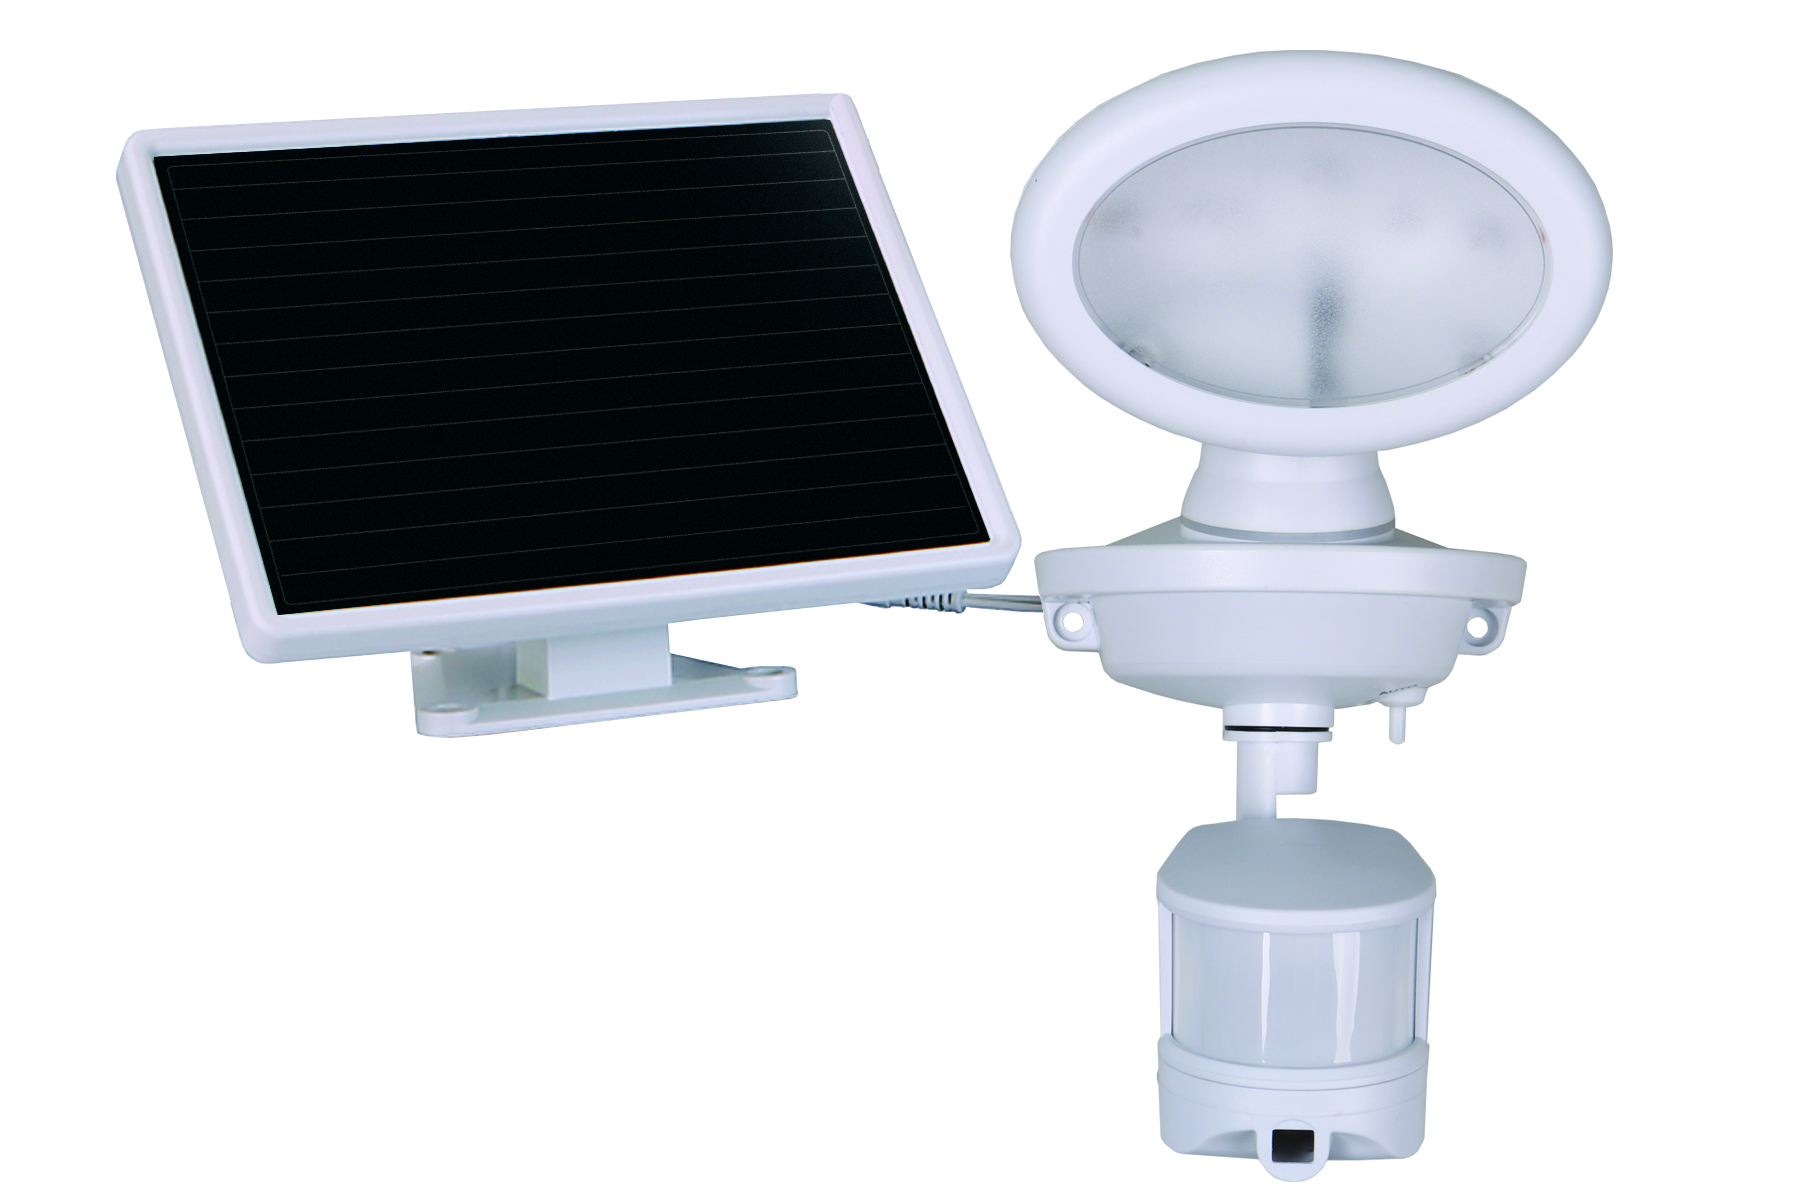 44643-cam-wh-solar-camera-spotlight-product-3-front.jpg